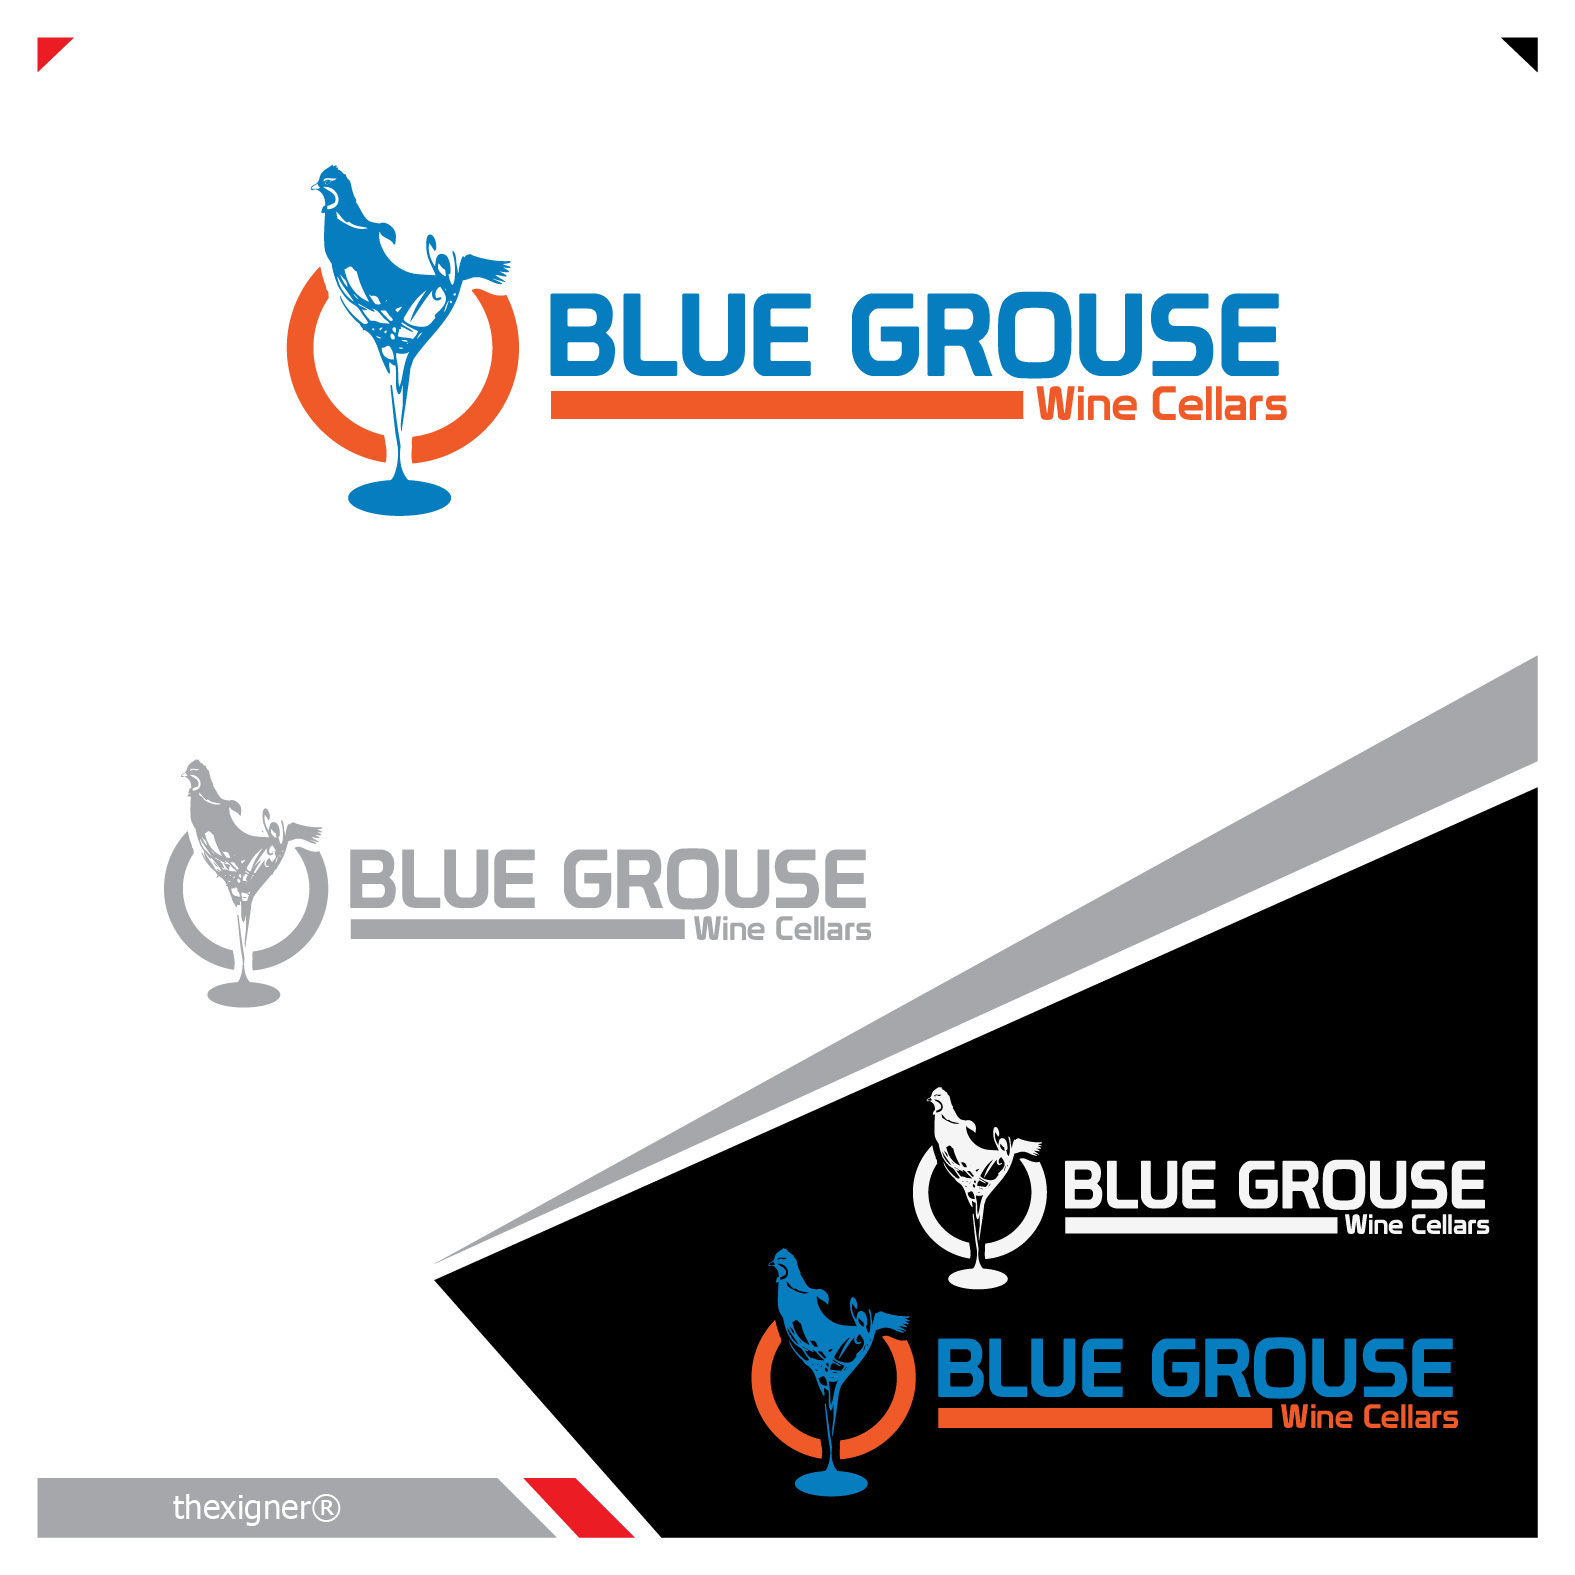 Logo Design by lagalag - Entry No. 65 in the Logo Design Contest Creative Logo Design for Blue Grouse Wine Cellars.